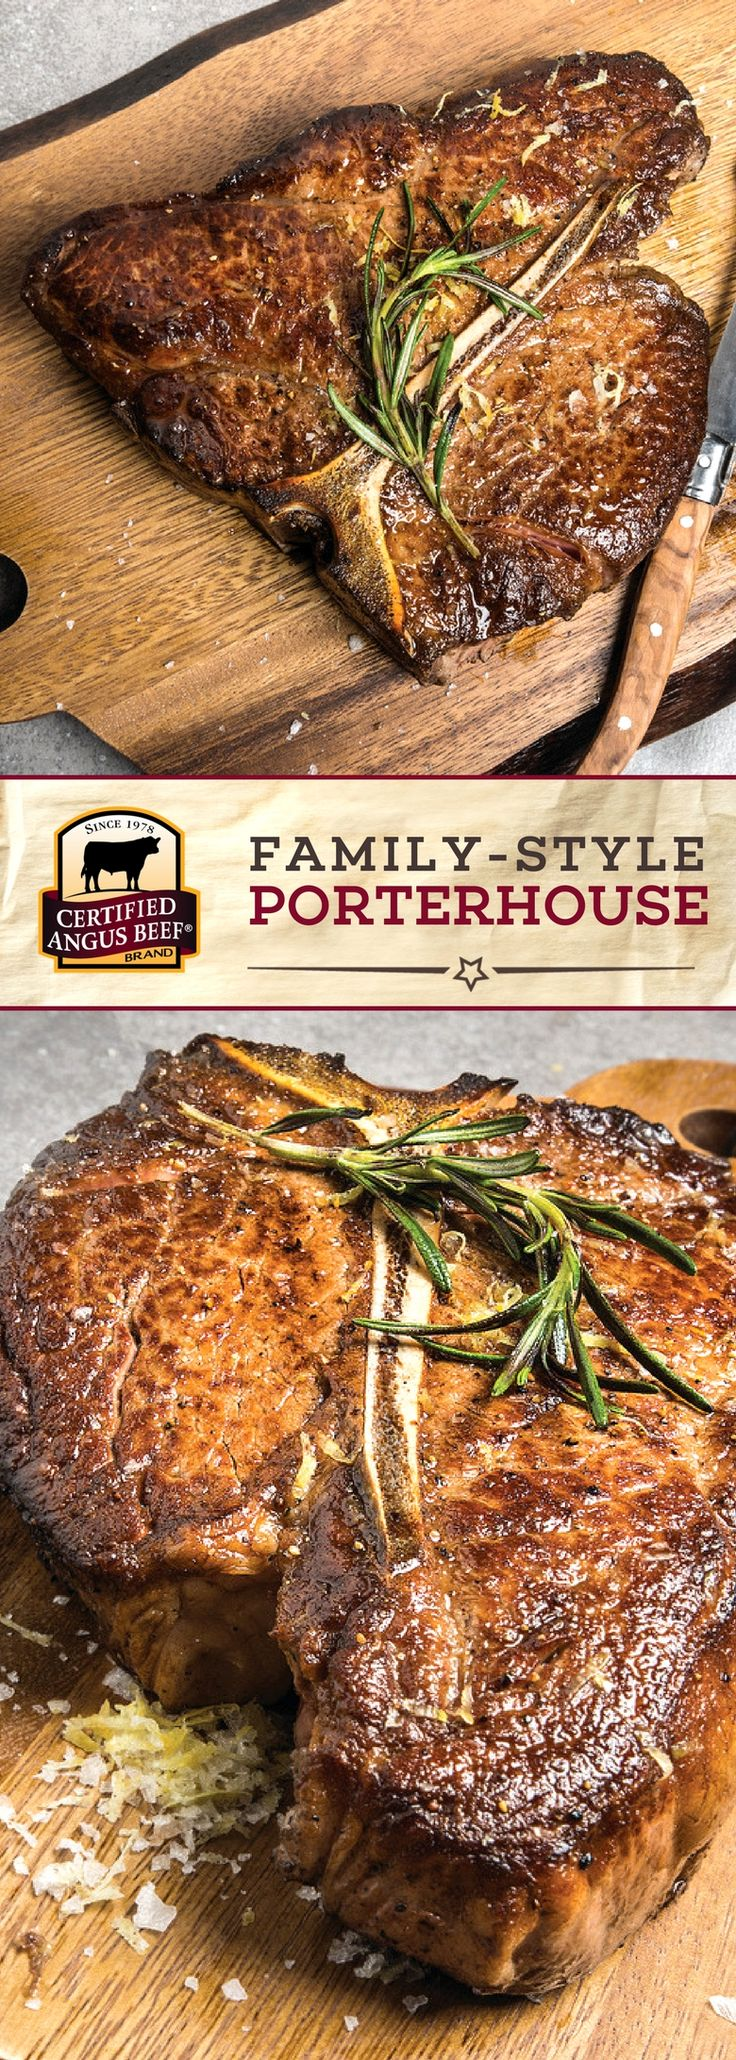 Certified Angus Beef®️️️️ brand Family-style Porterhouse is made with the best thick porterhouse steak and an EASY spice blend for a delicious steak dinner! Rosemary and lemon bring out the deep flavors of this incredibly tasty cut of beef. Perfect for a family meal or a meal for two! #bestangusbeef #certifiedangusbeef #beefrecipe #dinnerrecipes #steakrecipes